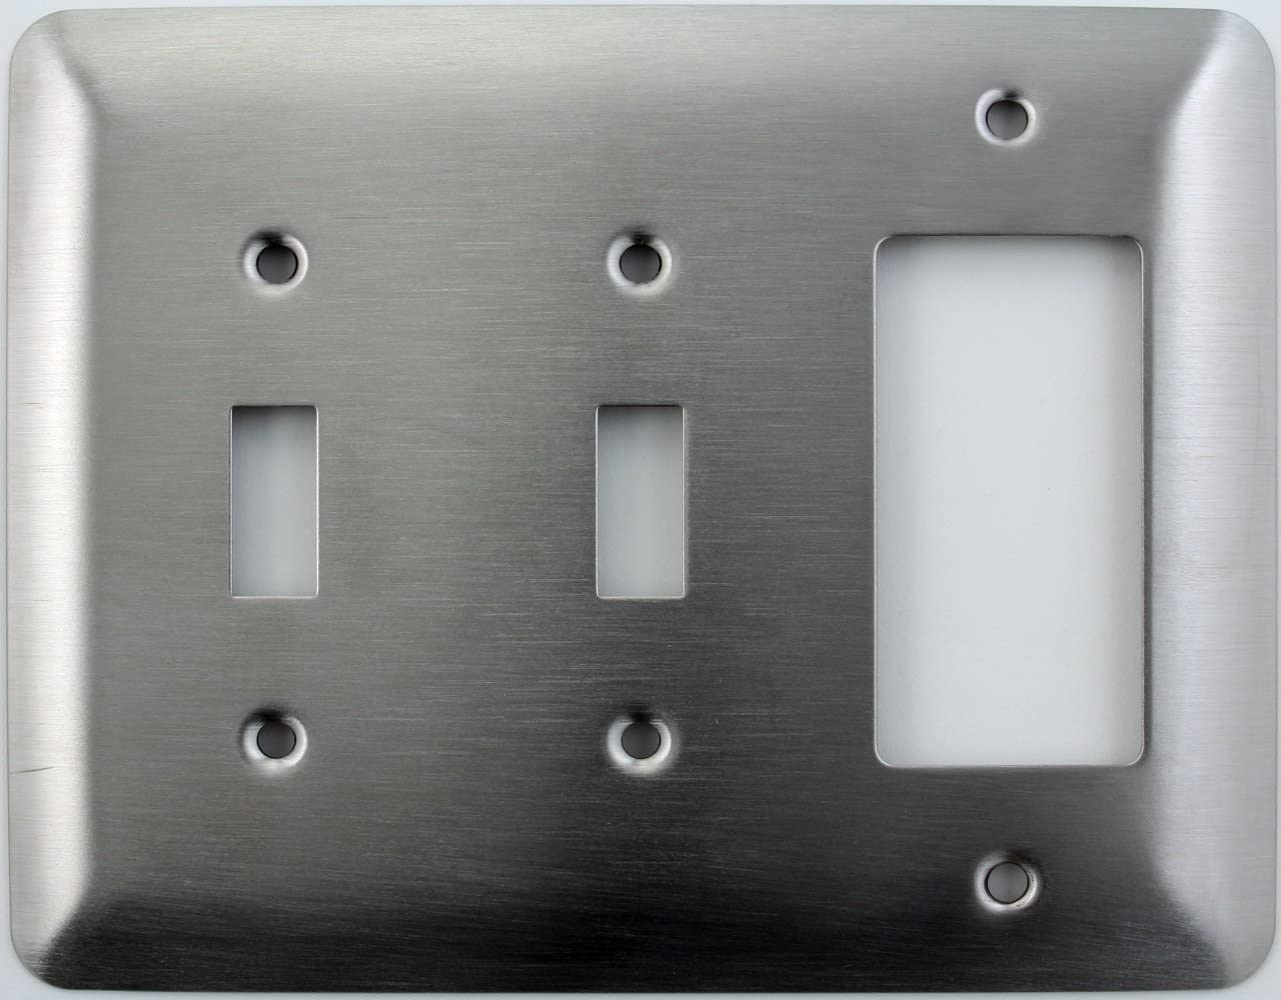 Mulberry Princess Style Satin Stainless Steel 3 Gang Switch Plate 2 Toggle Light Switch Opening 1 Gfi Rocker Opening Classic Accents Two Toggle One Gfi Amazon Com